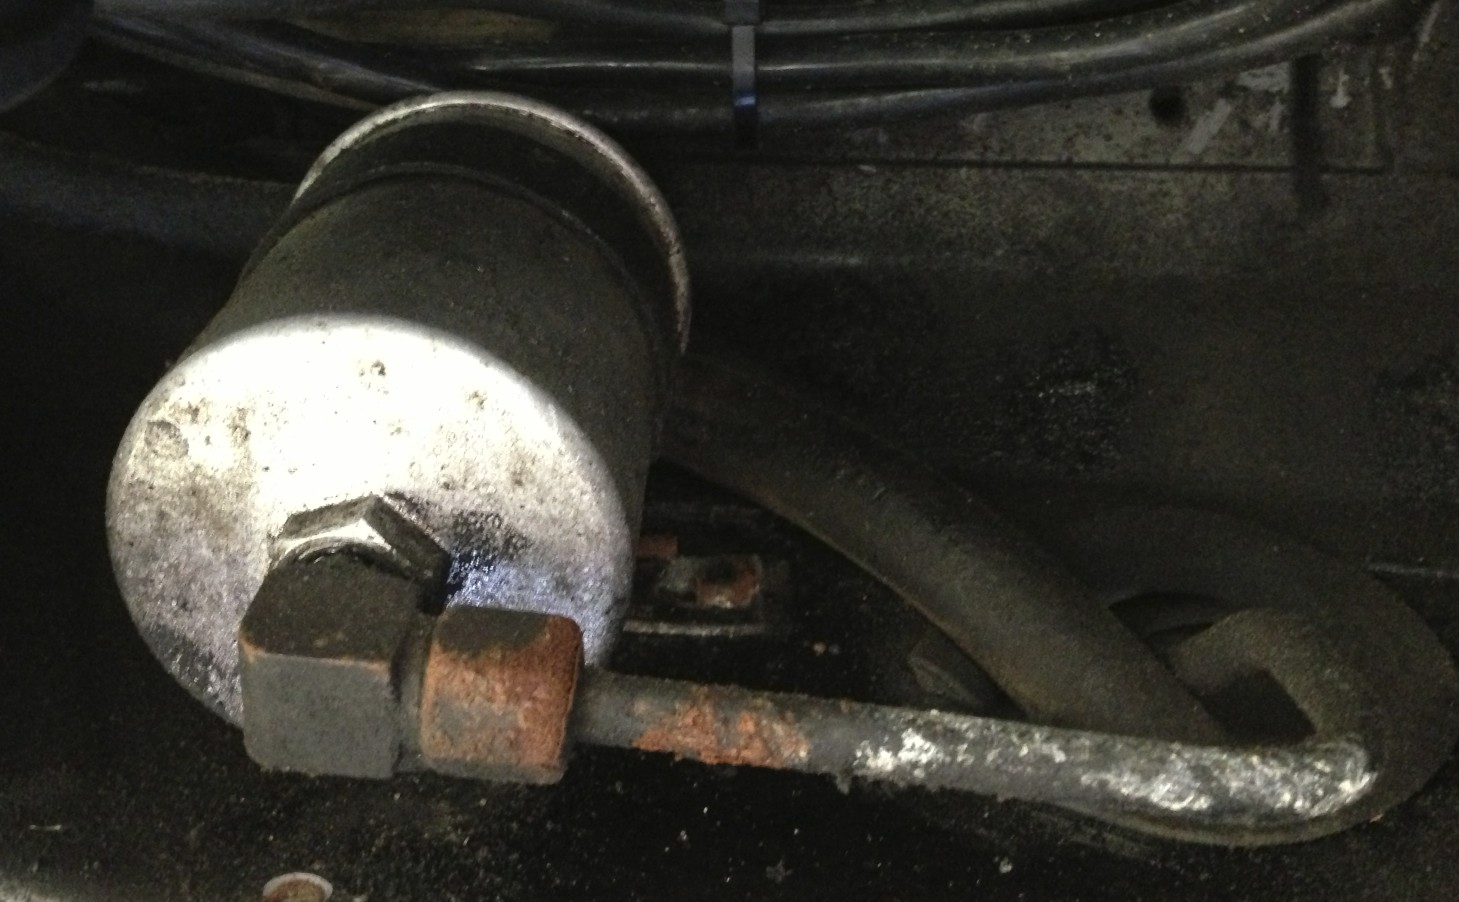 Fuel Filter and Rusted Nut